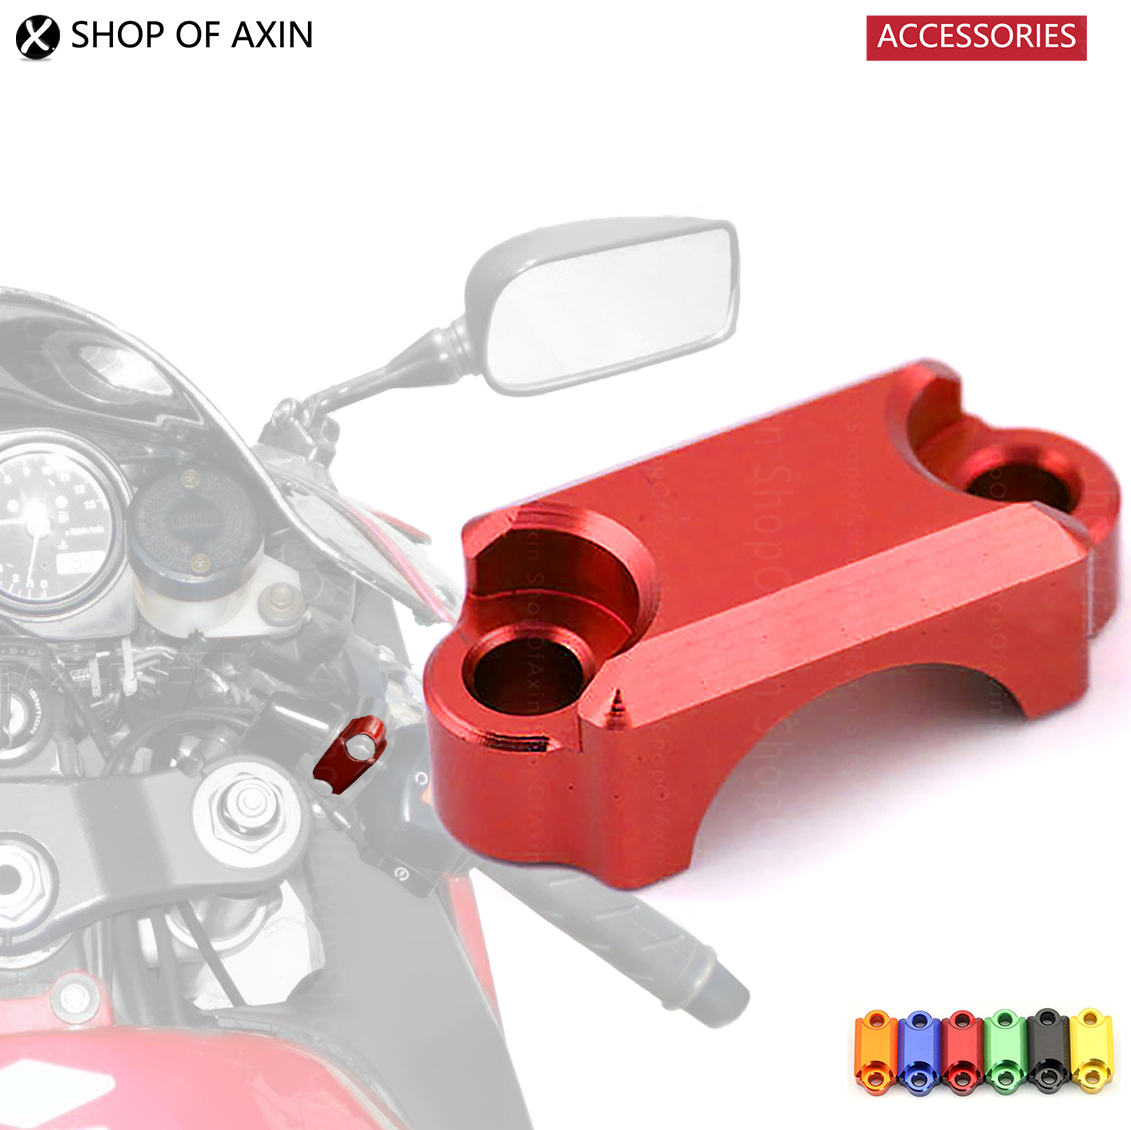 Motorcycle CNC Brake Master Cylinder Clamp Handlebar Bar Clamp Cover For HONDA CBR 600R 1000RR 954 XR 400 650 CB600F CRF 250 450 выключатель 2 клавишный наружный дерево 10а quteo